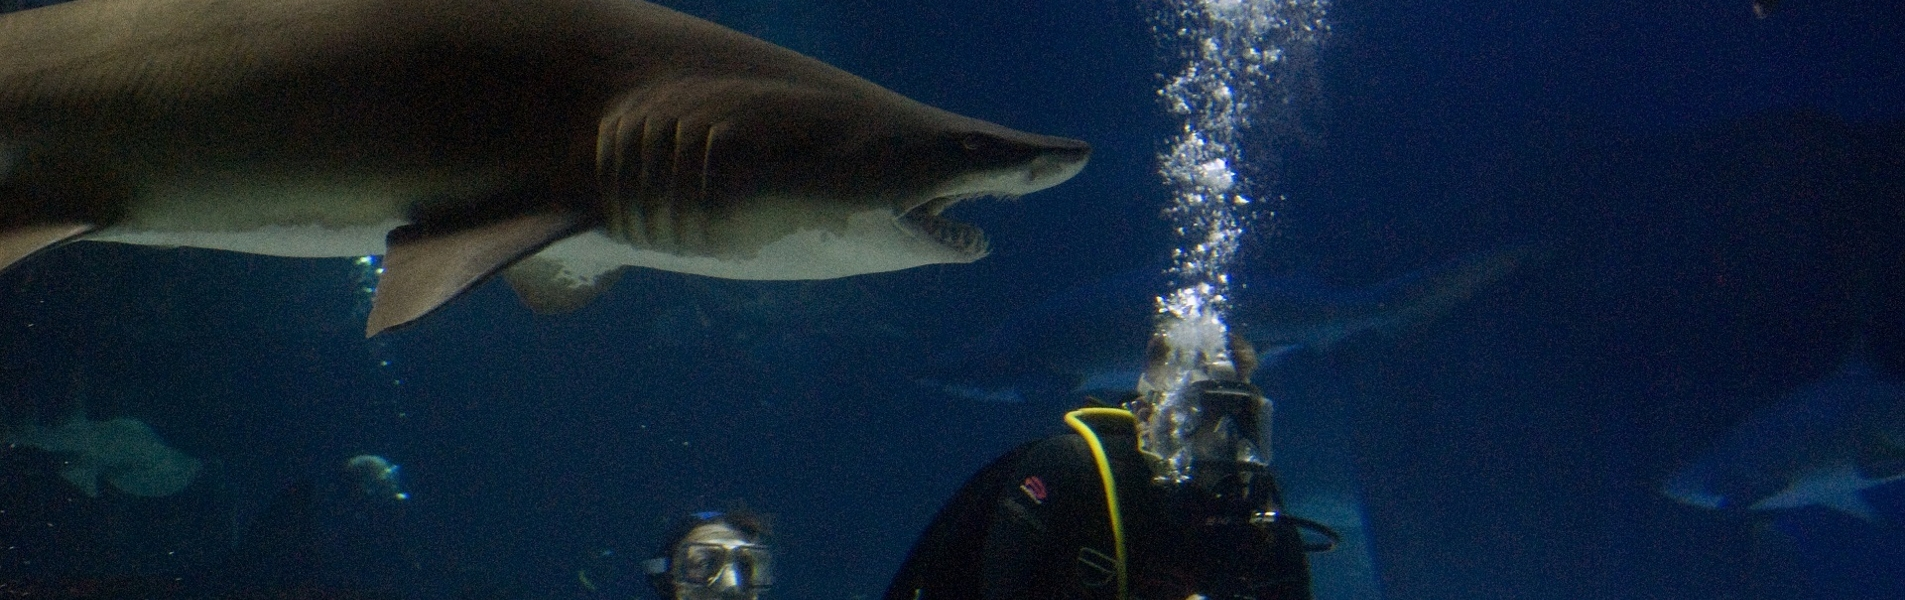 Why Don't Sharks Attack Scuba Divers?